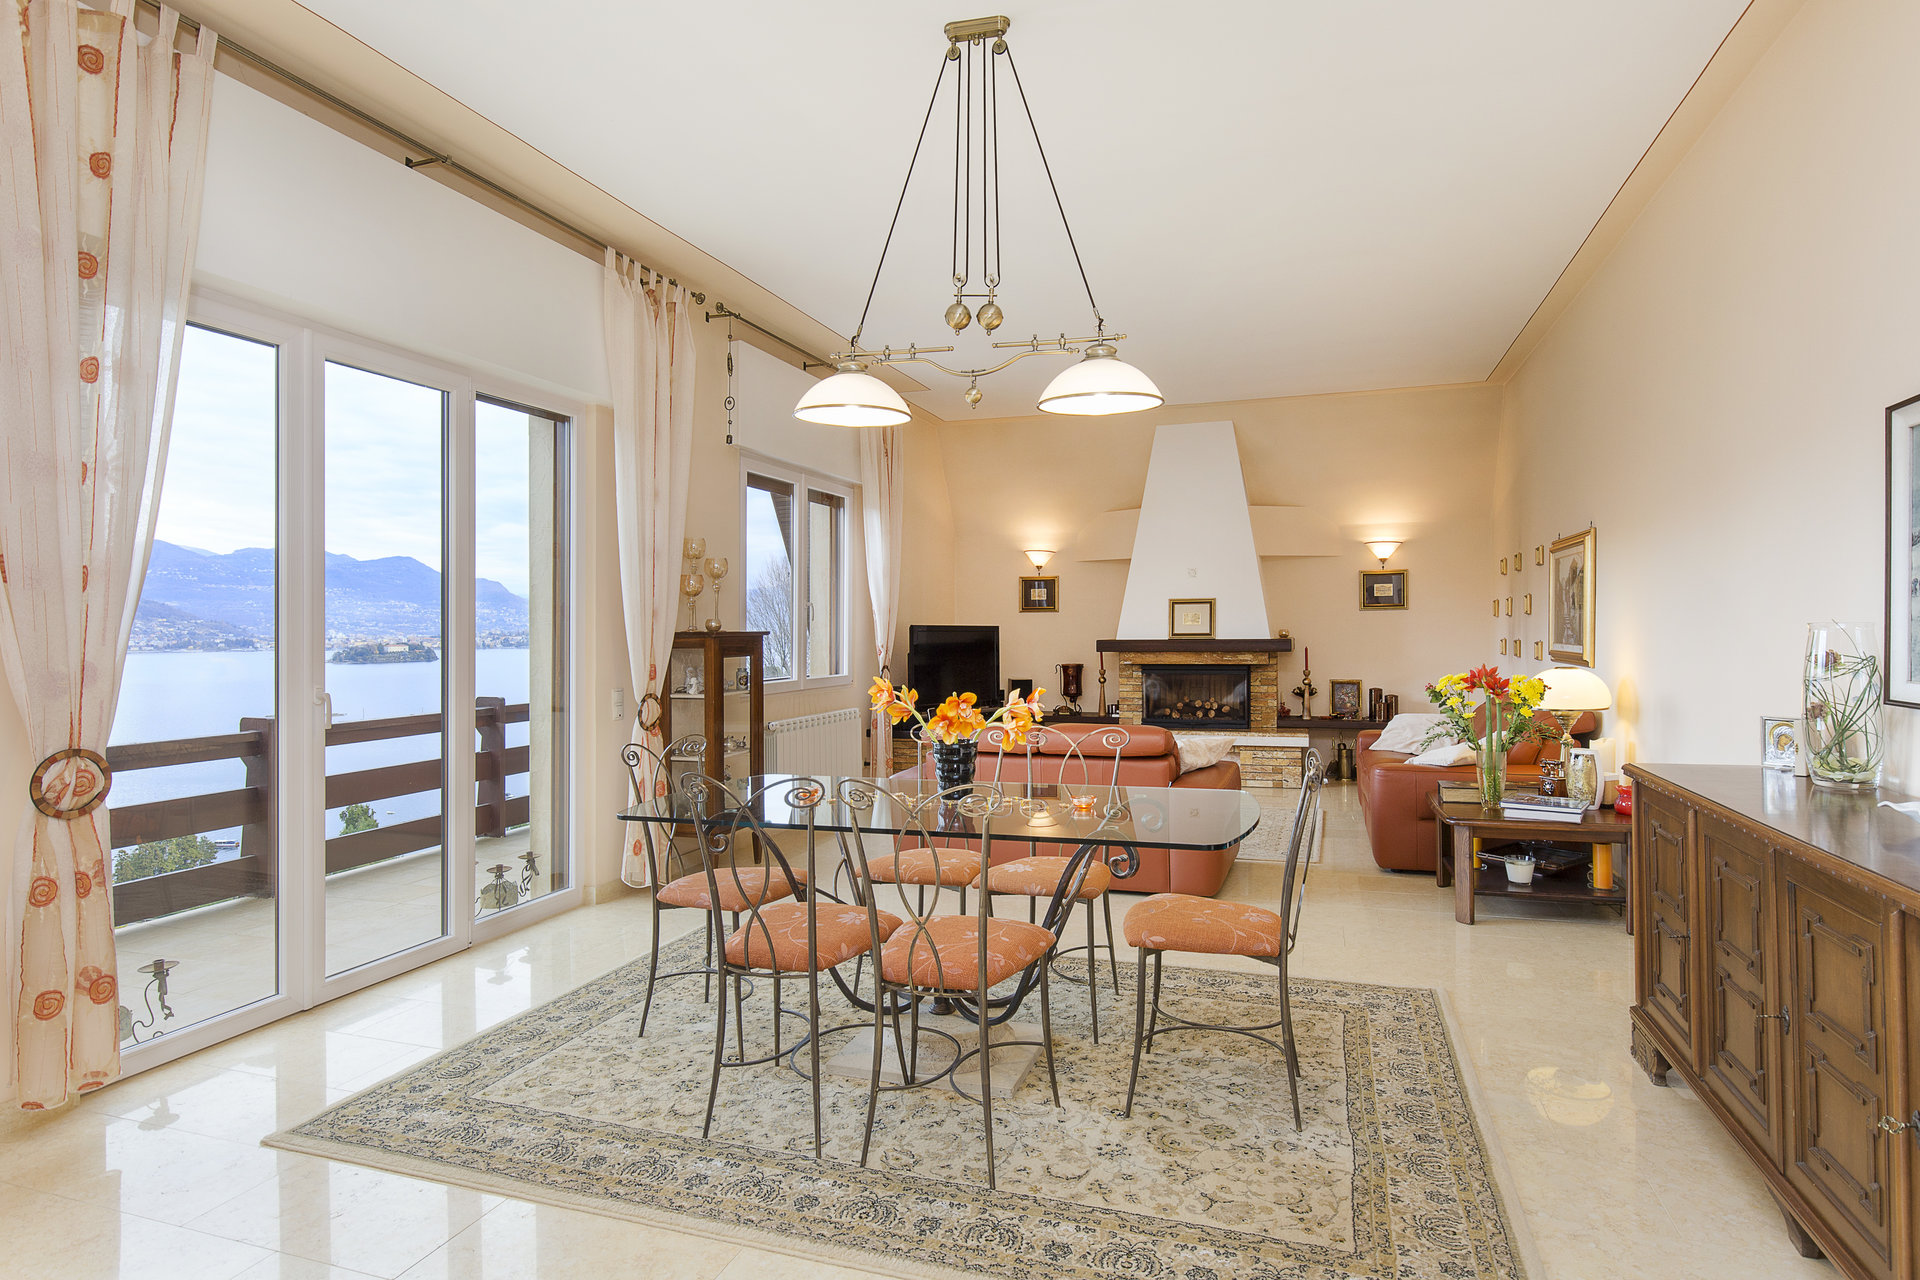 Villa for sale in Stresa with park and view on Borromean islands - dining room